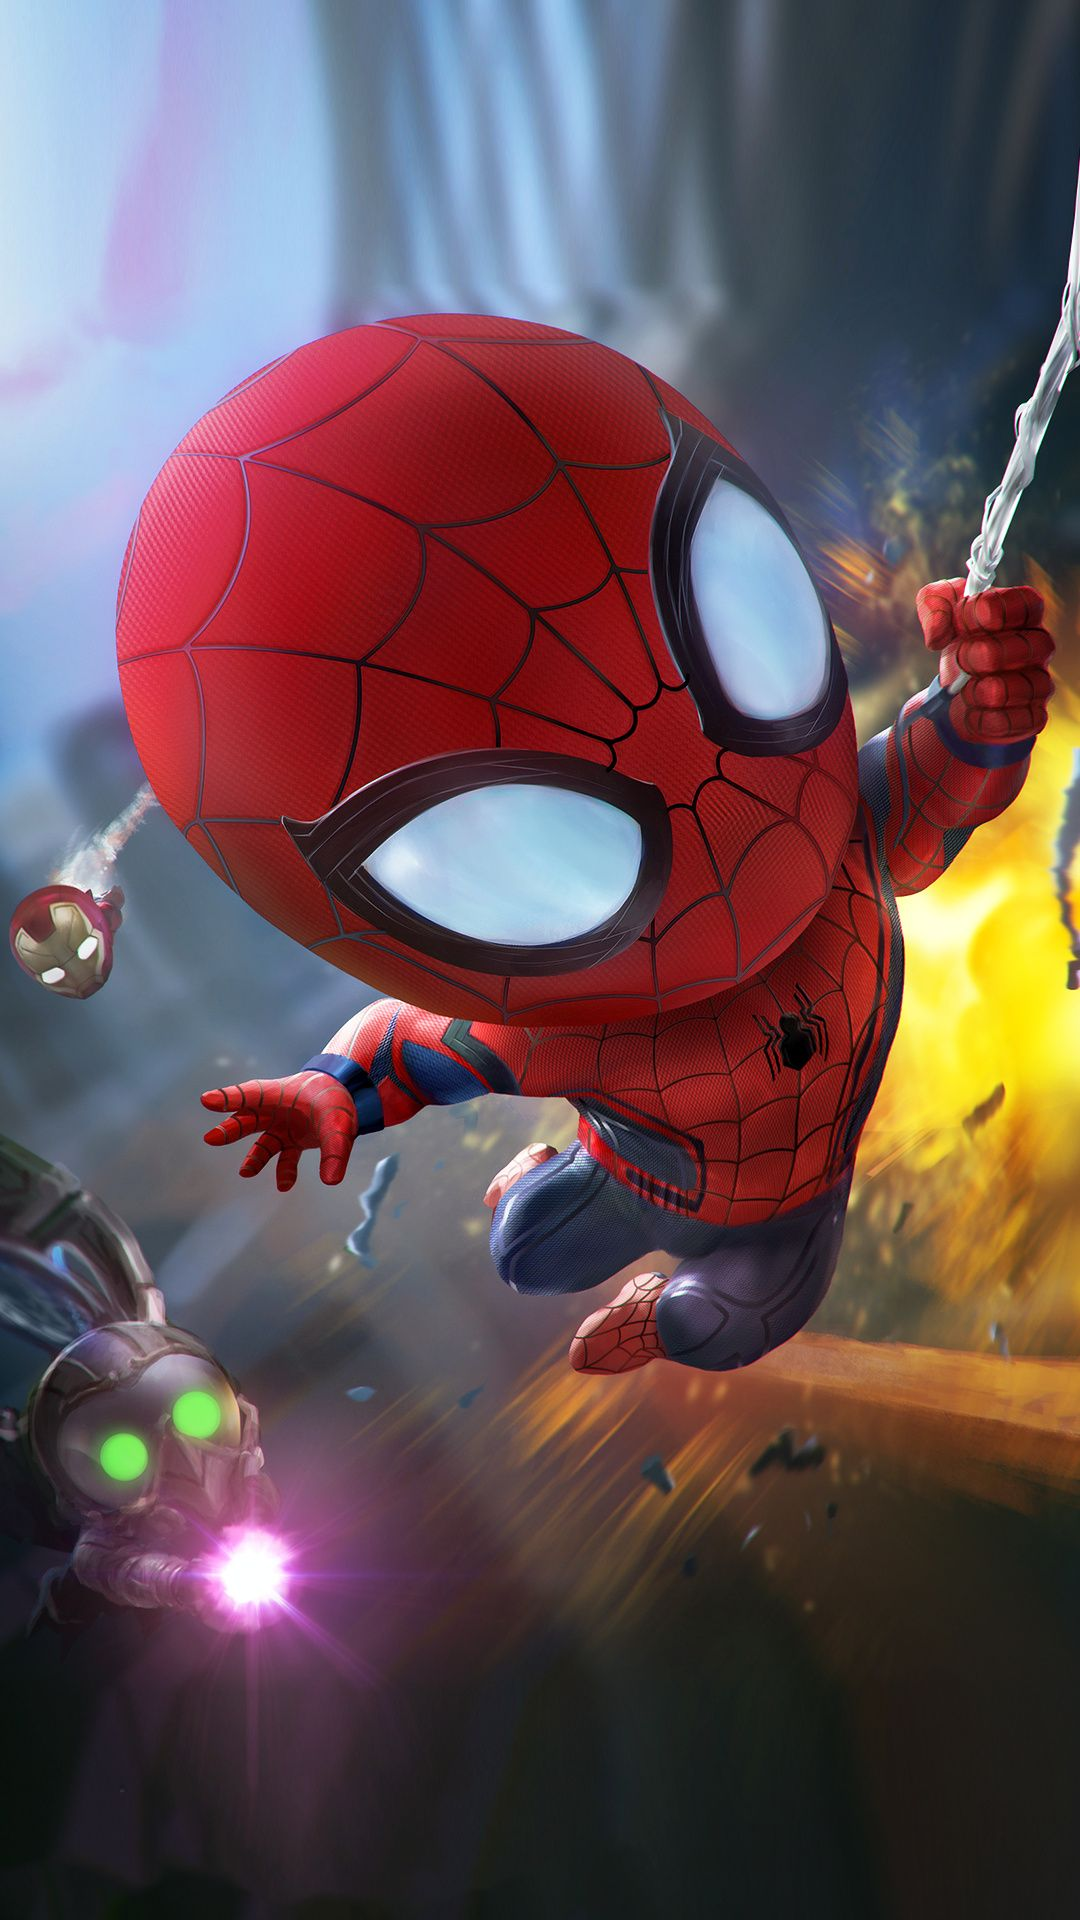 Baby Spider Man Mobile Hd Wallpaper Superhero Wallpaper Avengers Wallpaper Deadpool Wallpaper